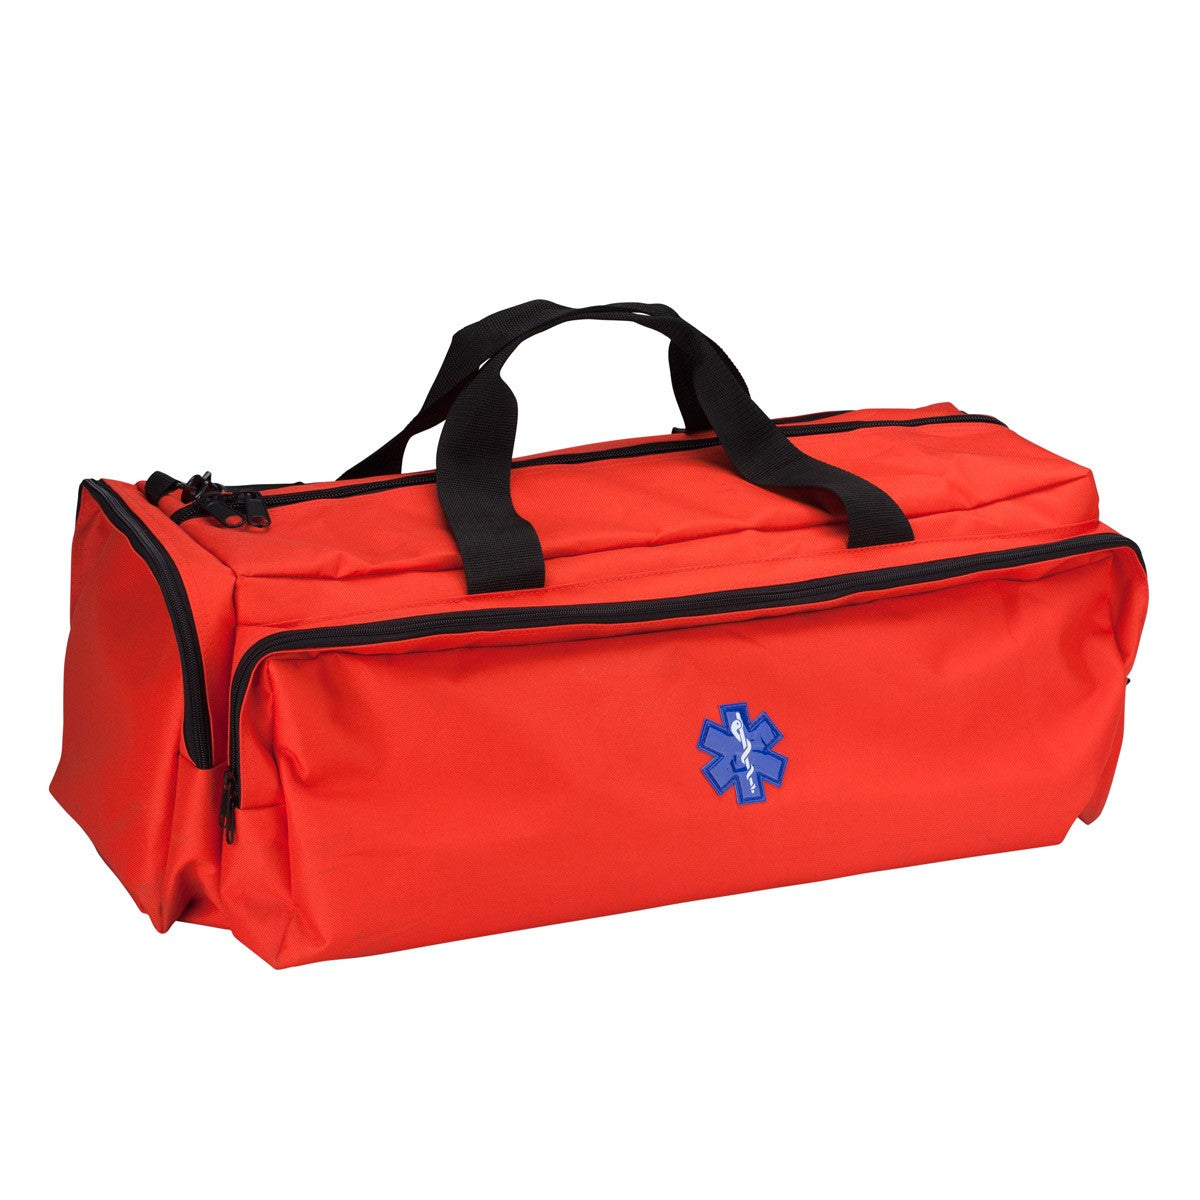 First Aid Only First Responder Kit, Extra Large in Duffle Bag